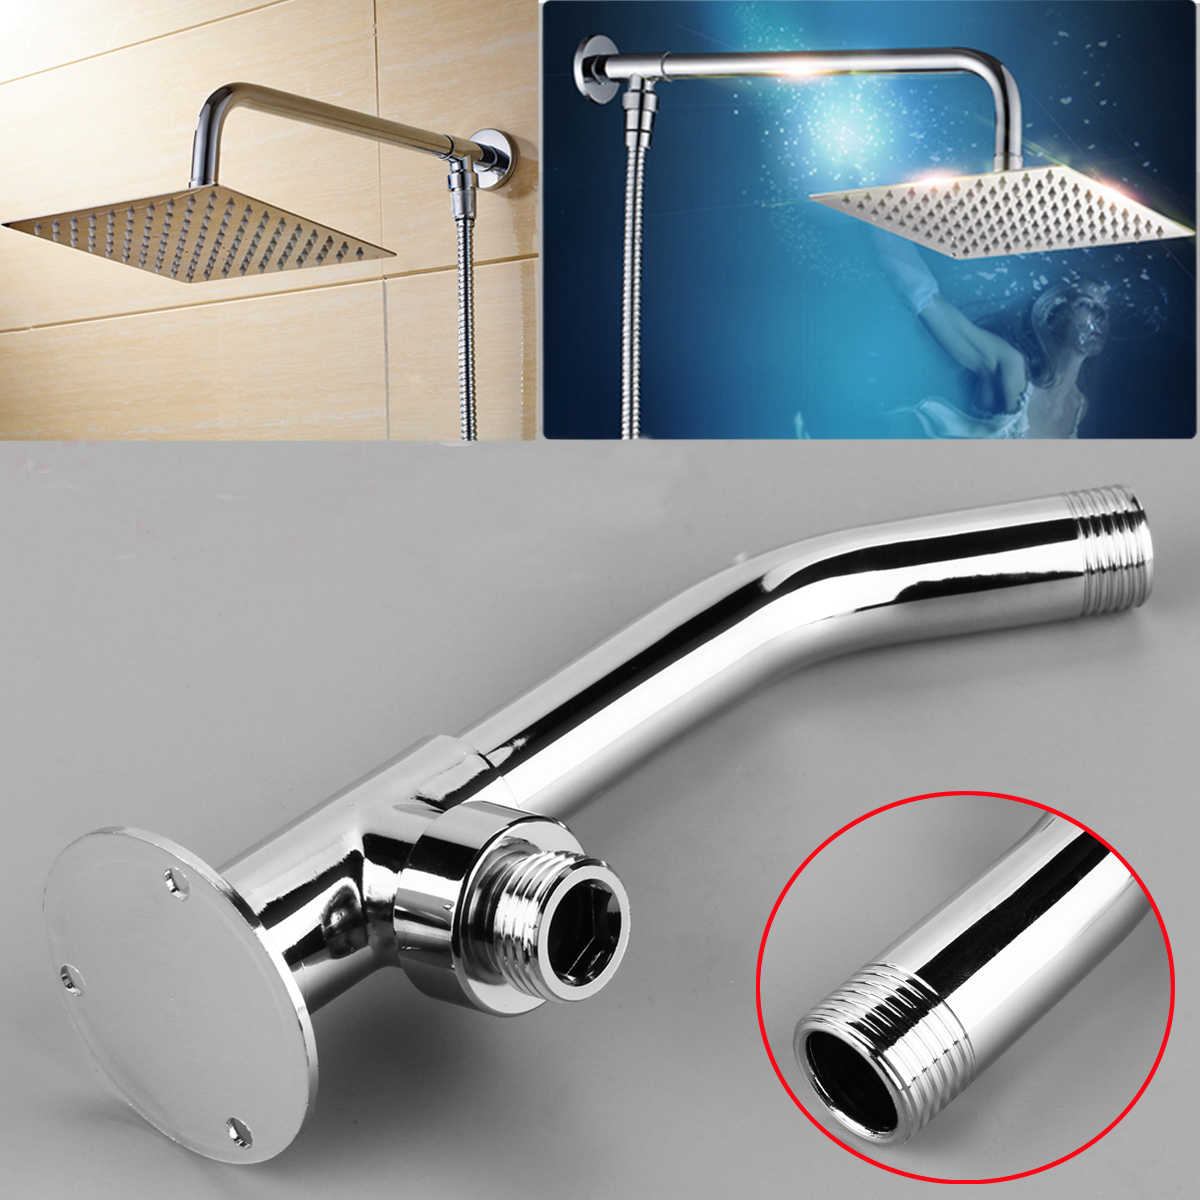 13 2cm Wall Mounted Shower Extension Arm Pipe Bottom Entry For Rain Shower Head